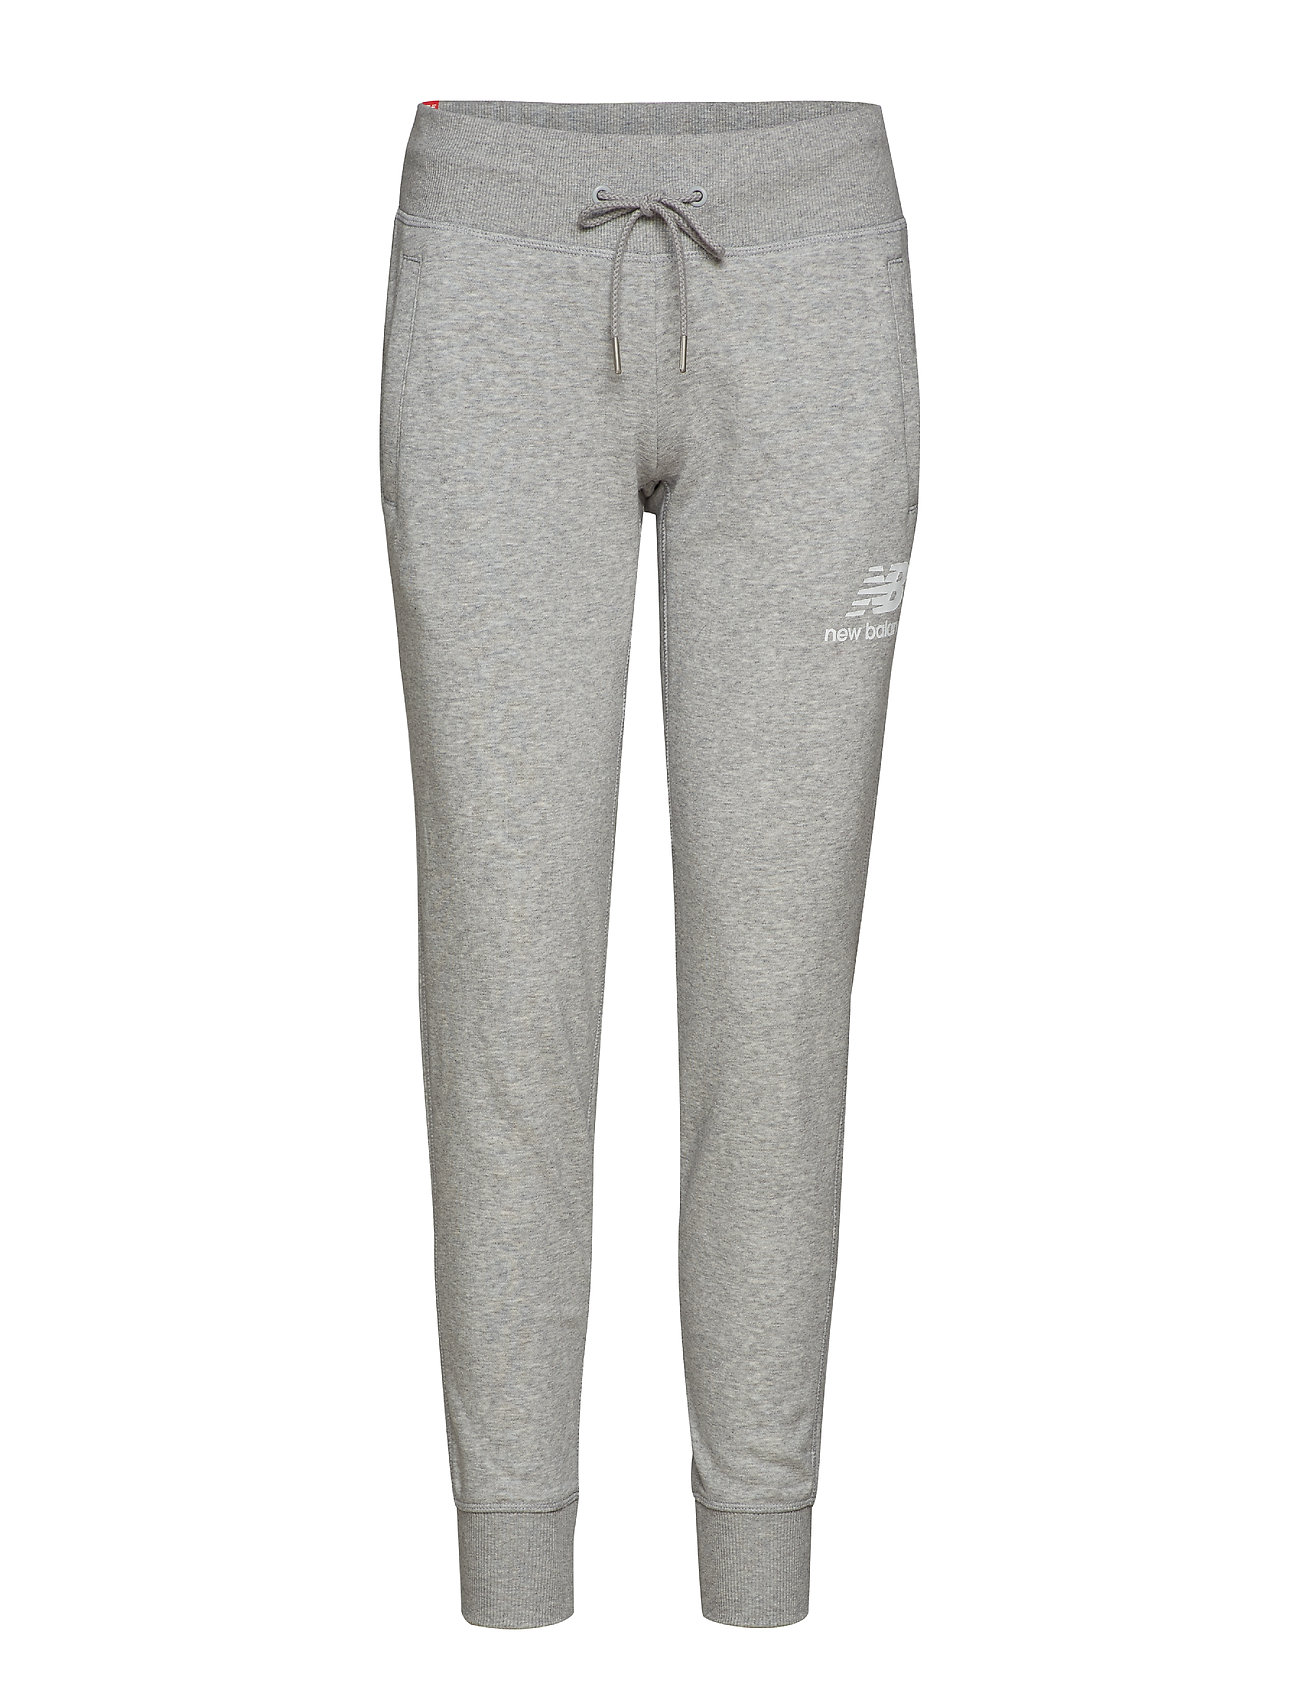 New Balance ESSENTIALS FT SWEATPANT - ATHLETIC GRE